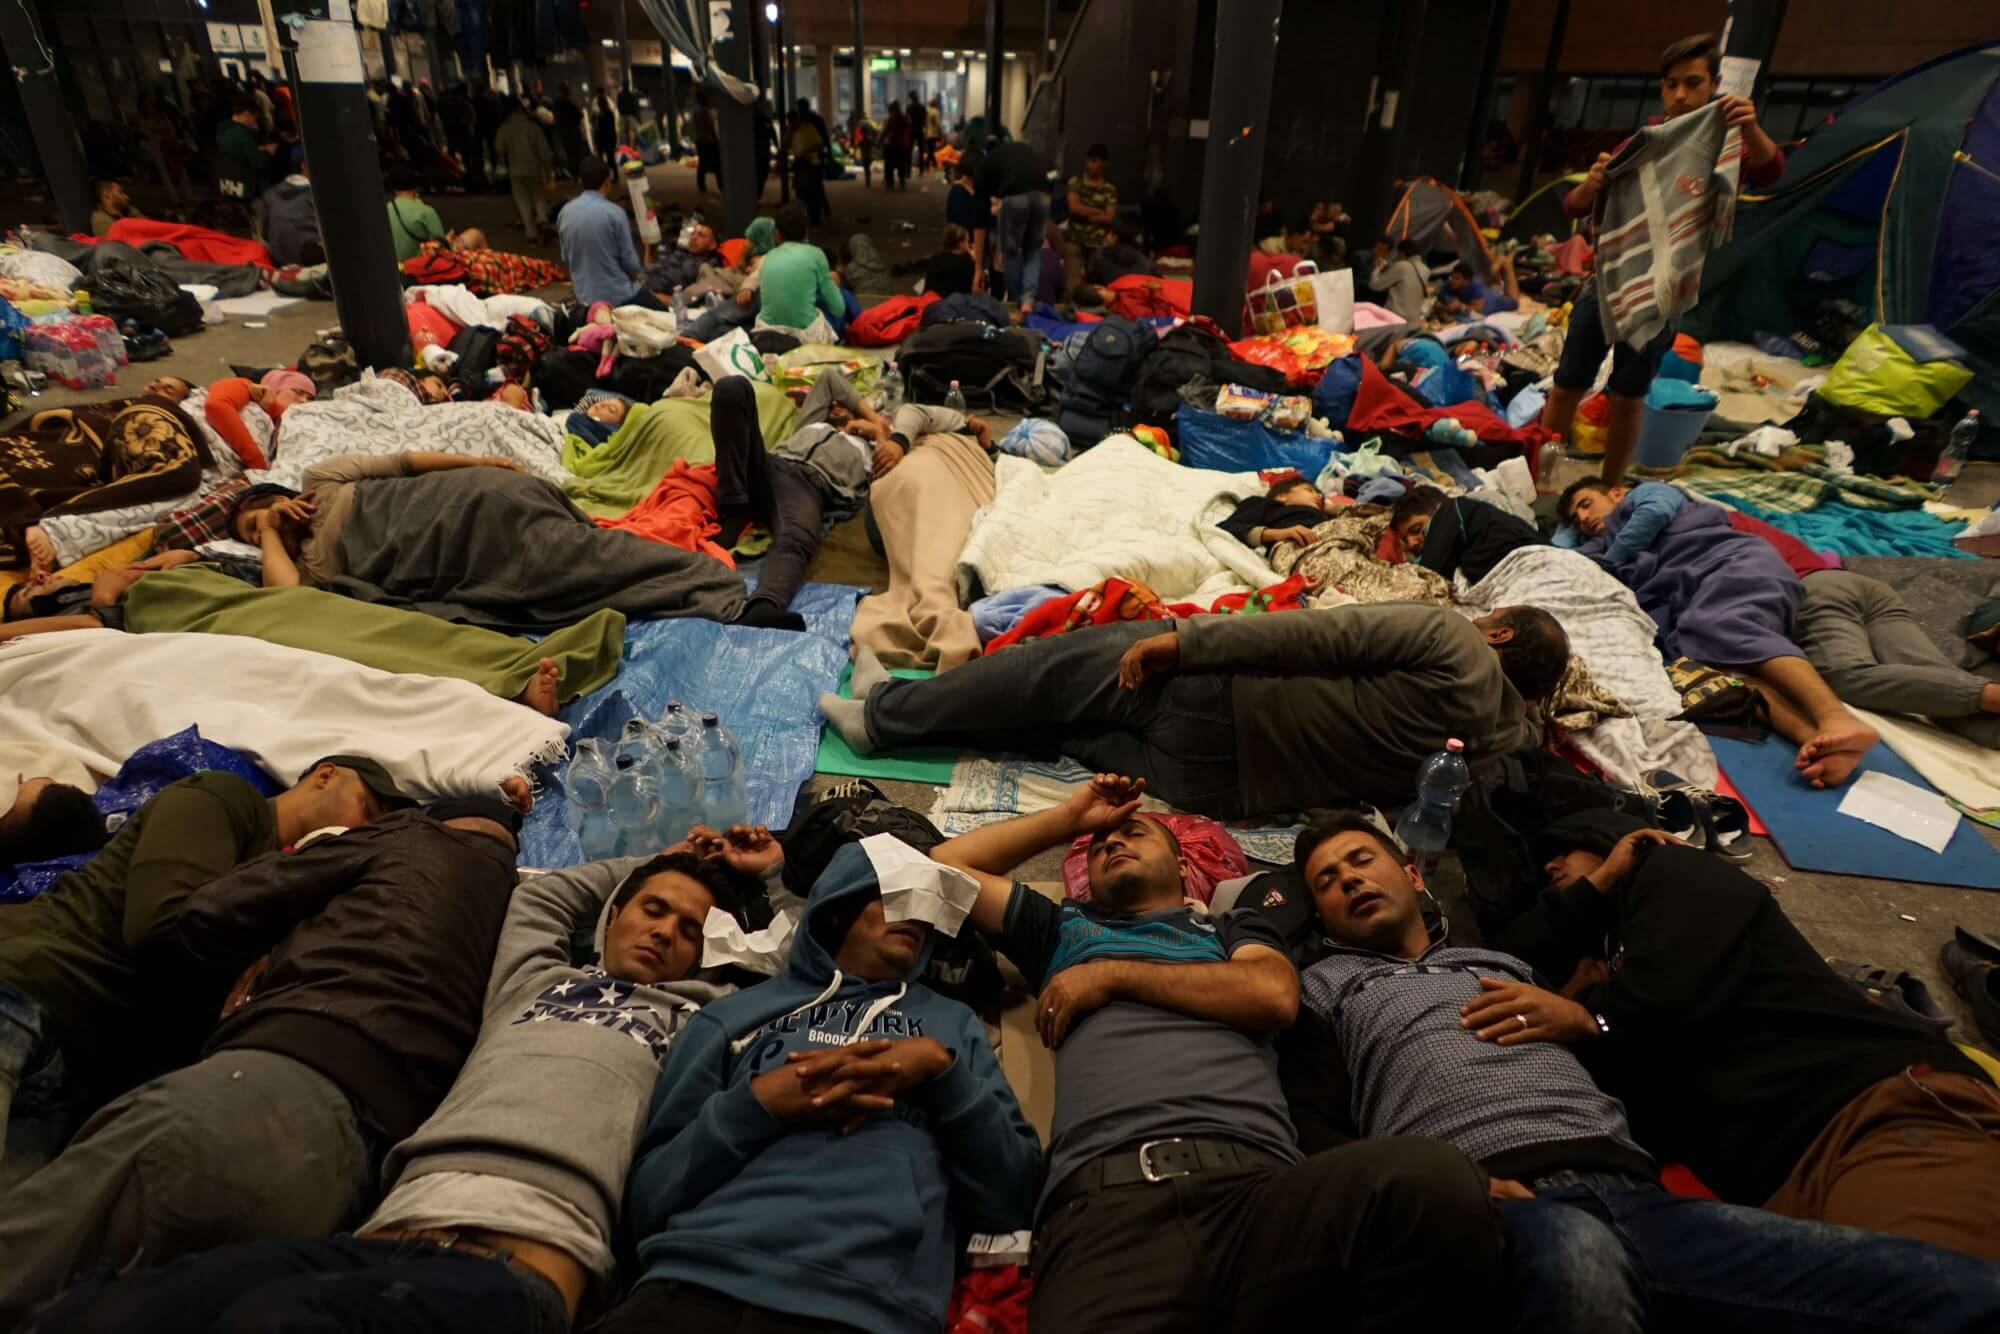 U.S. response criticized as Syrian refugees threaten to destabilize Middle East